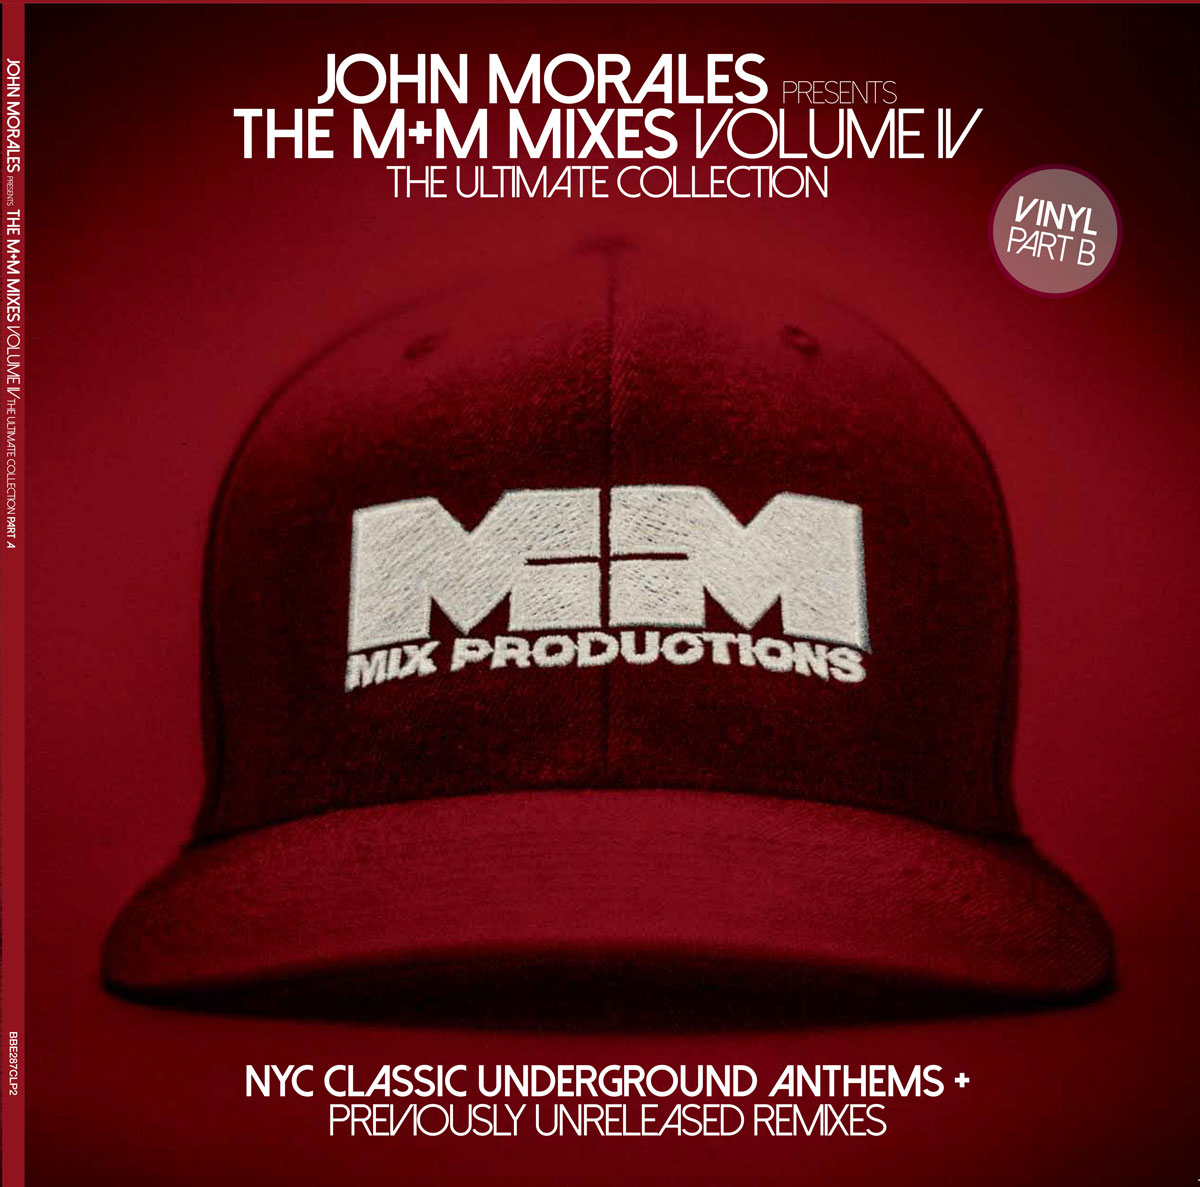 The M+M Mixes Vol. 4 Vinyl LP – Part B